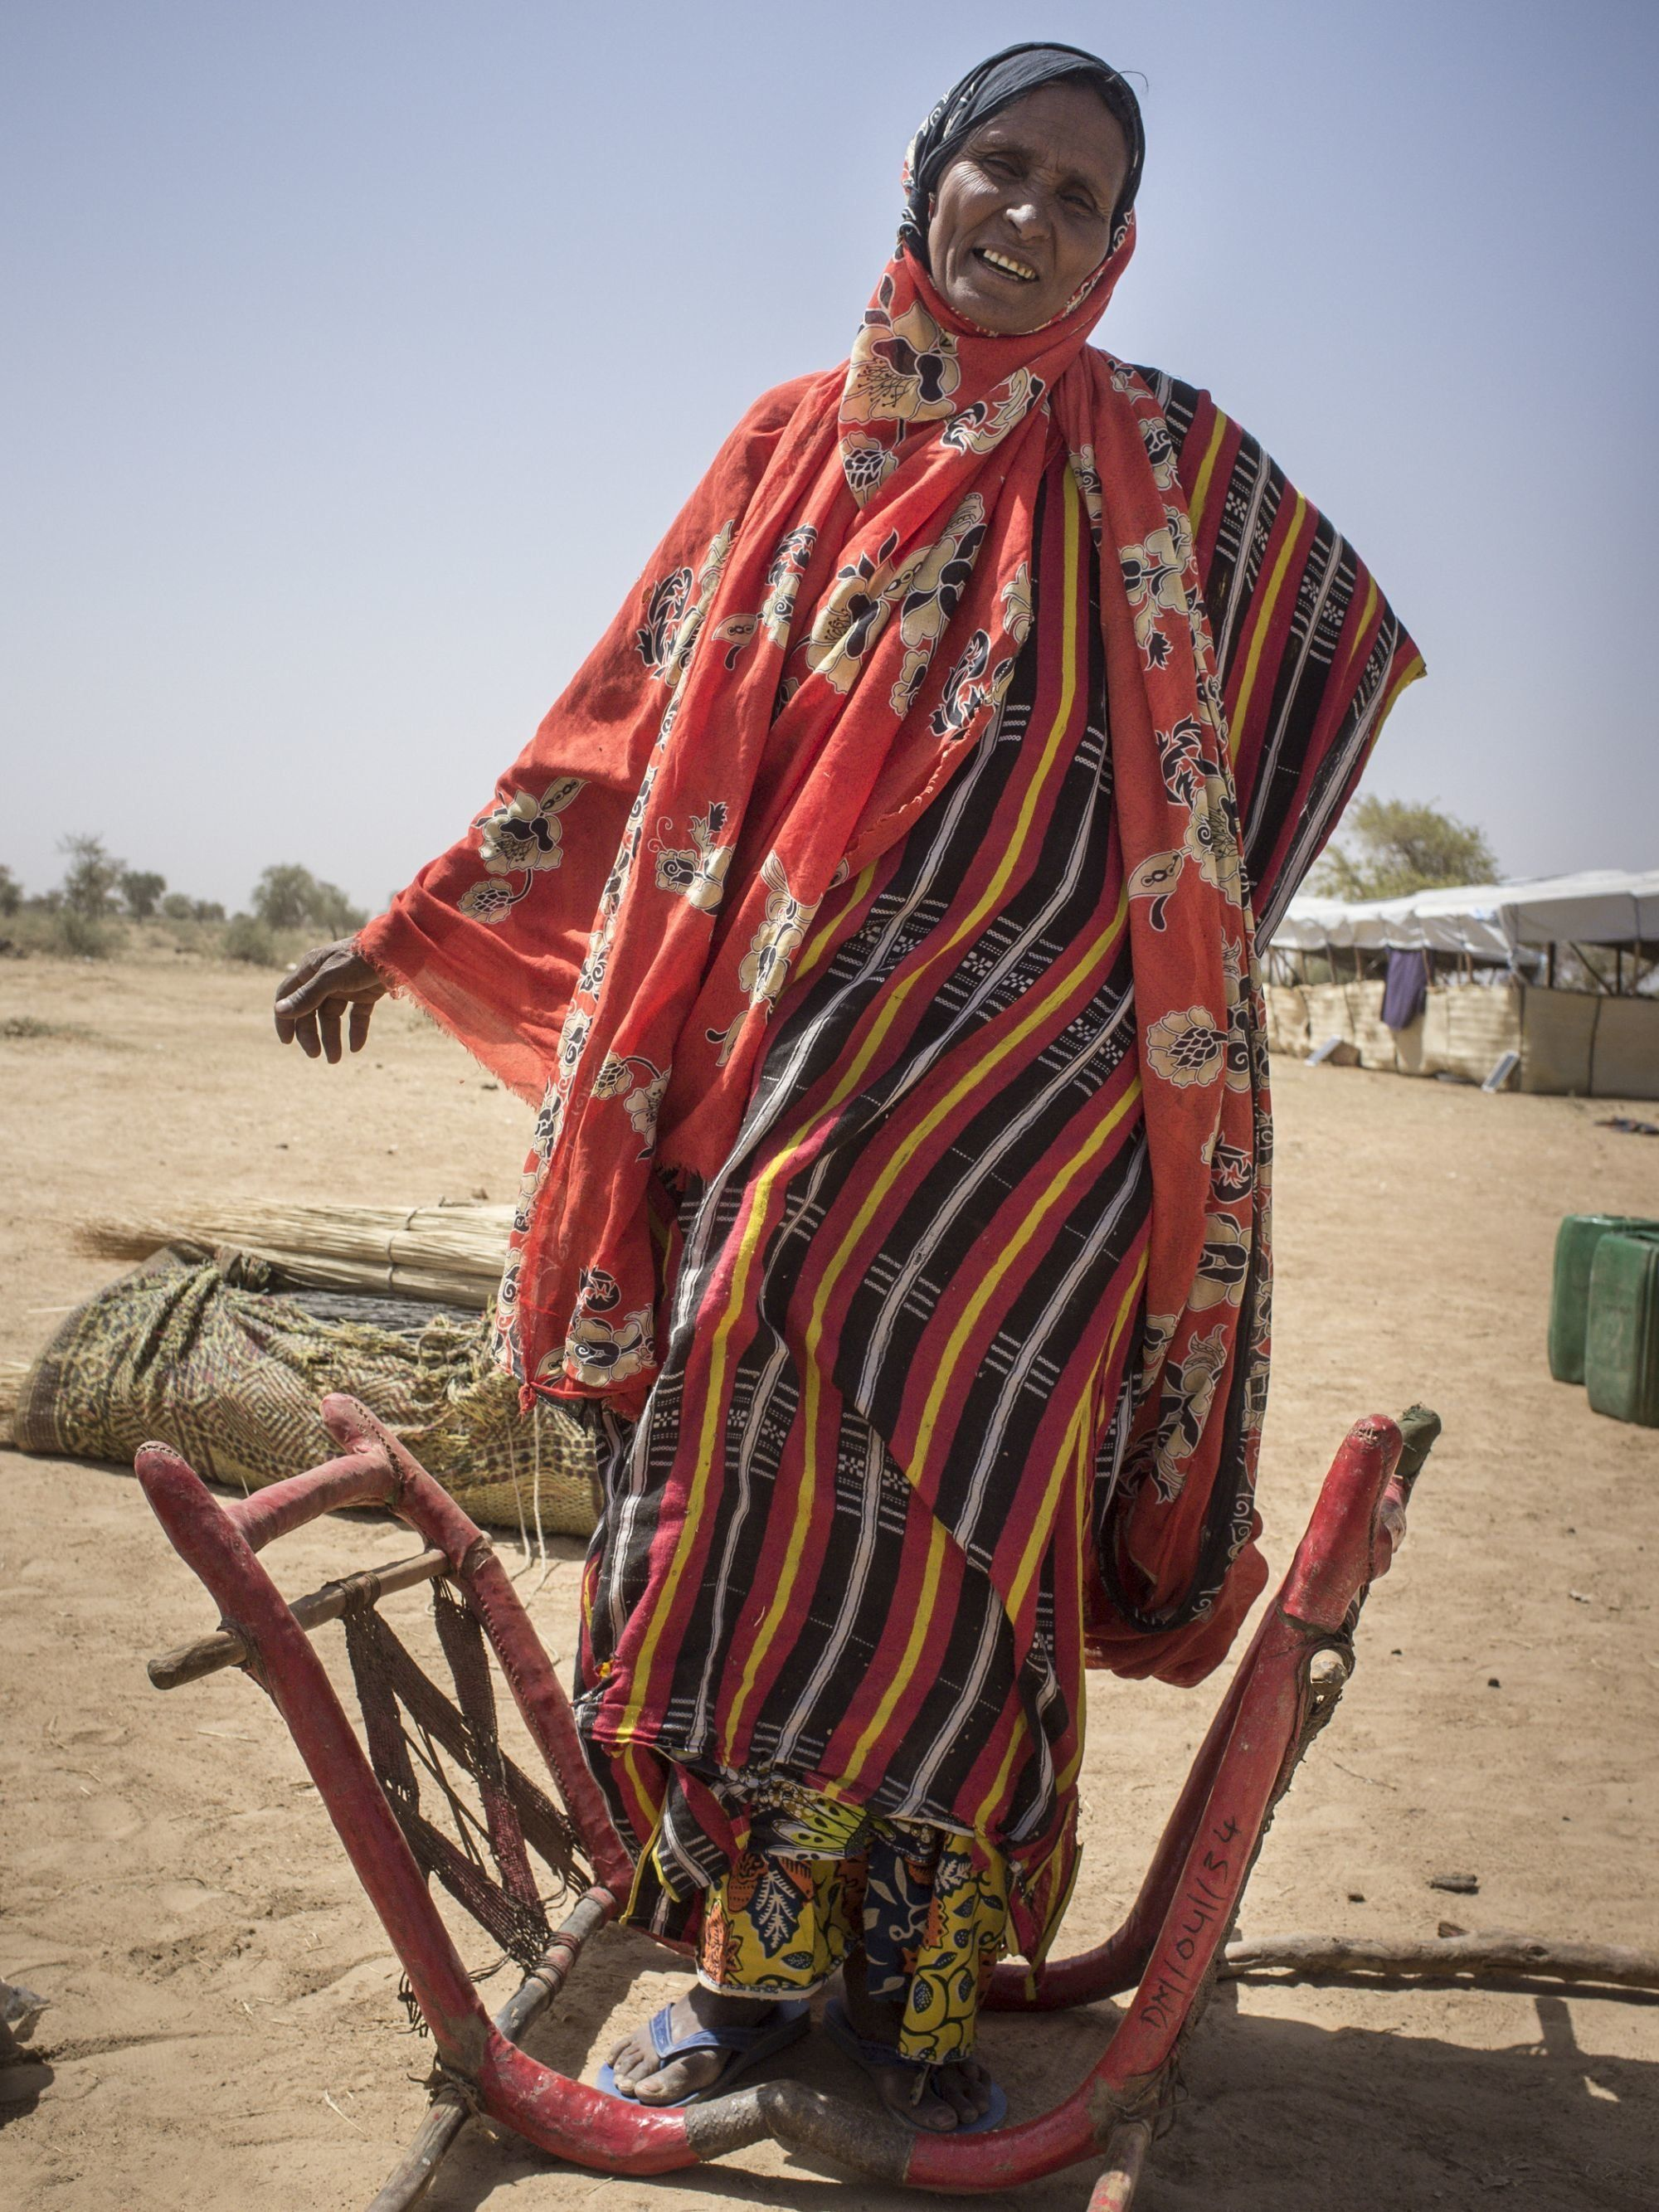 A Tuareg woman from Timbuktu stands next to the livestock chair she rode upon to reach Burkina Faso. She fled Mali by camel in 2013.